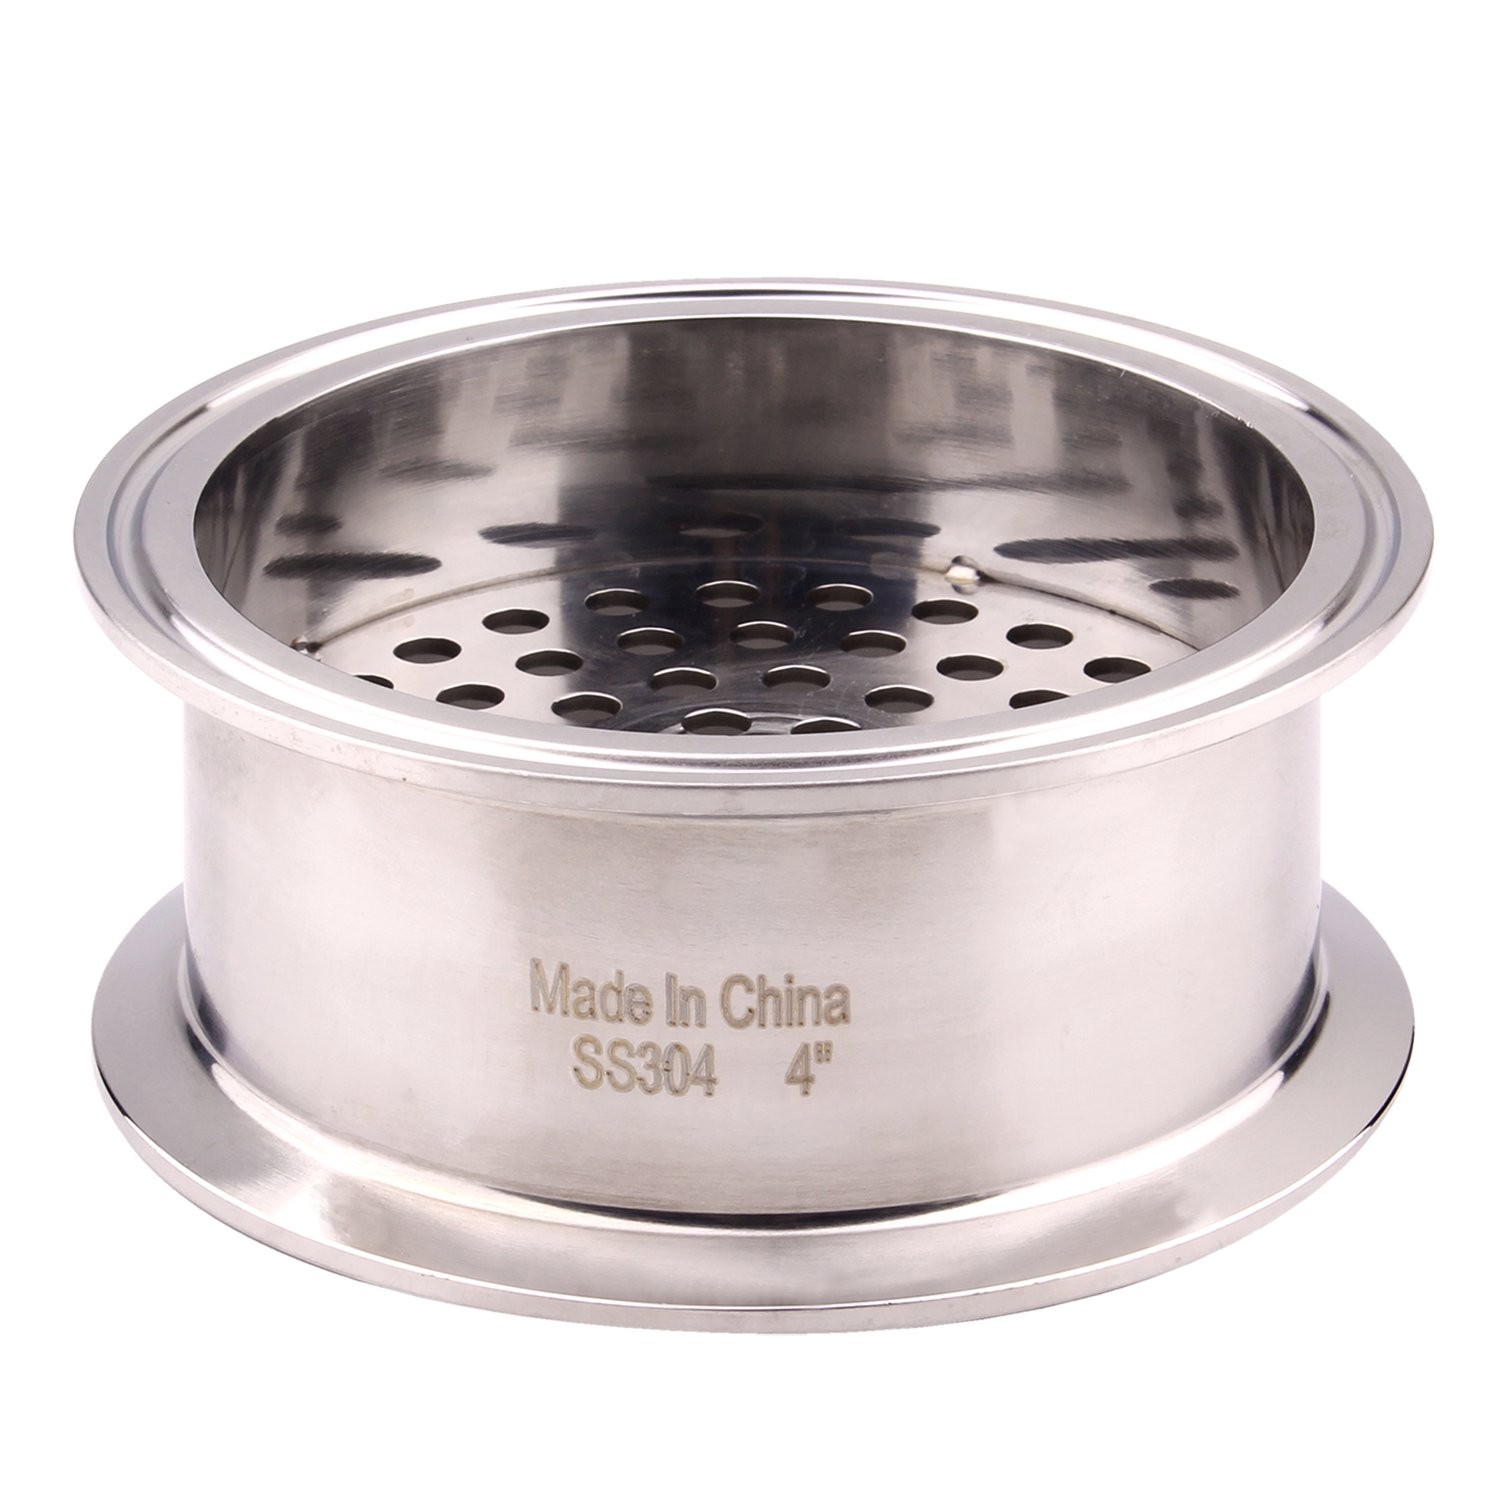 1.5 Tri Clamp Size DERNORD Tri Clamp Filter Plate High Pressure Sanitary Fitting with 6mm Holes